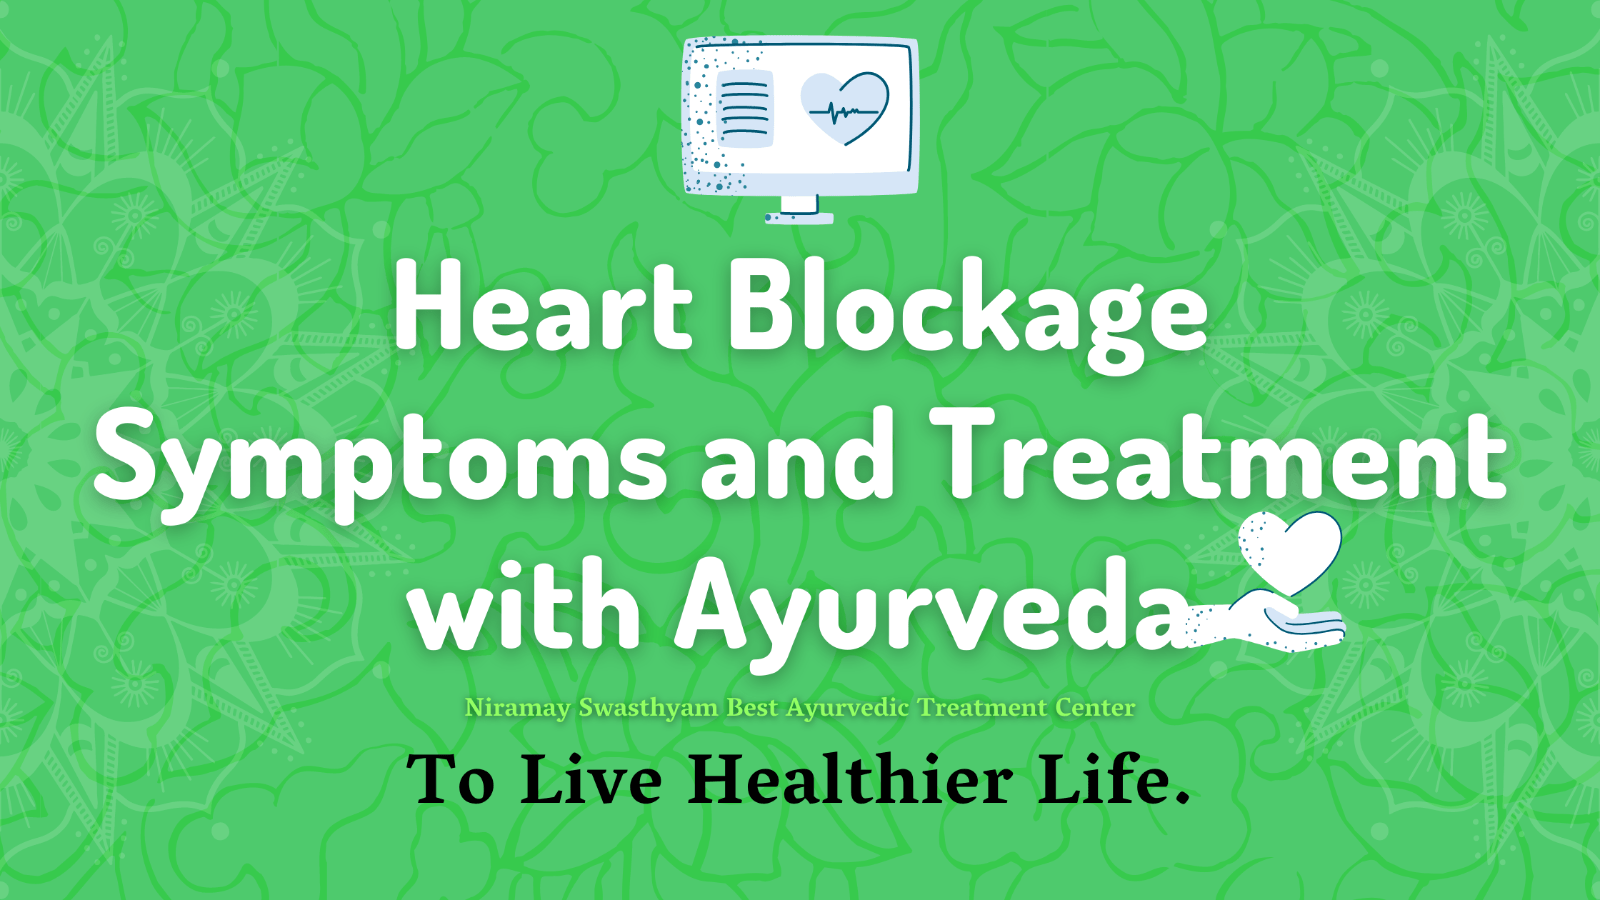 14 Heart Blockage Symptoms and Treatment with Ayurveda